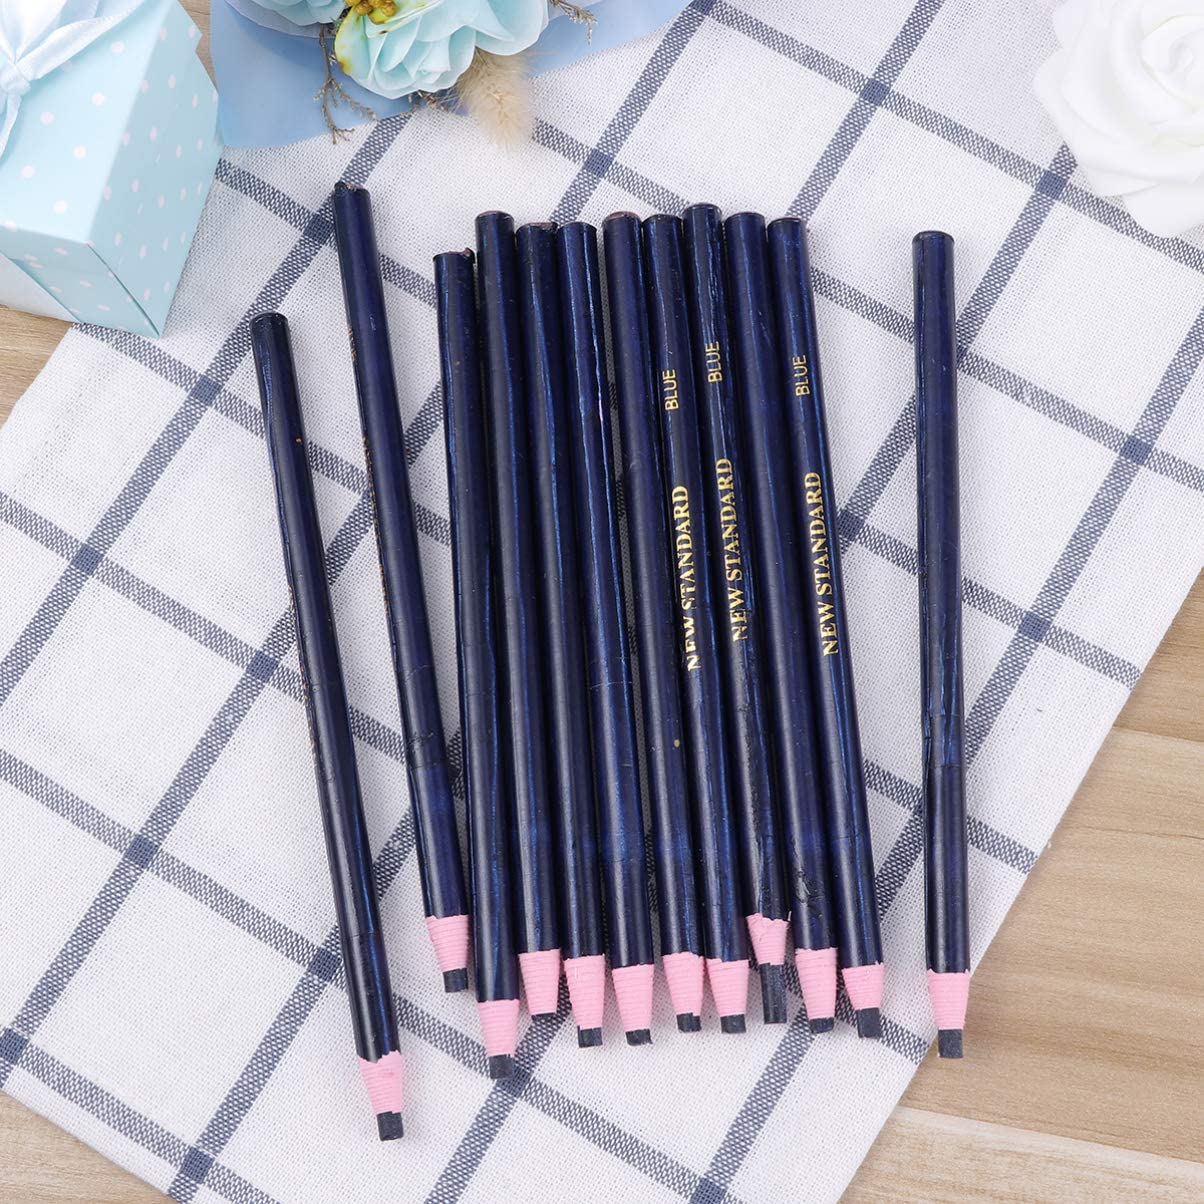 12Pcs Peel Off Marker Grease Pencil Colored Crayon Pen Paper Roll Wax Pencil For Metal Glass Fabric Art Supplies Stylish and Popular